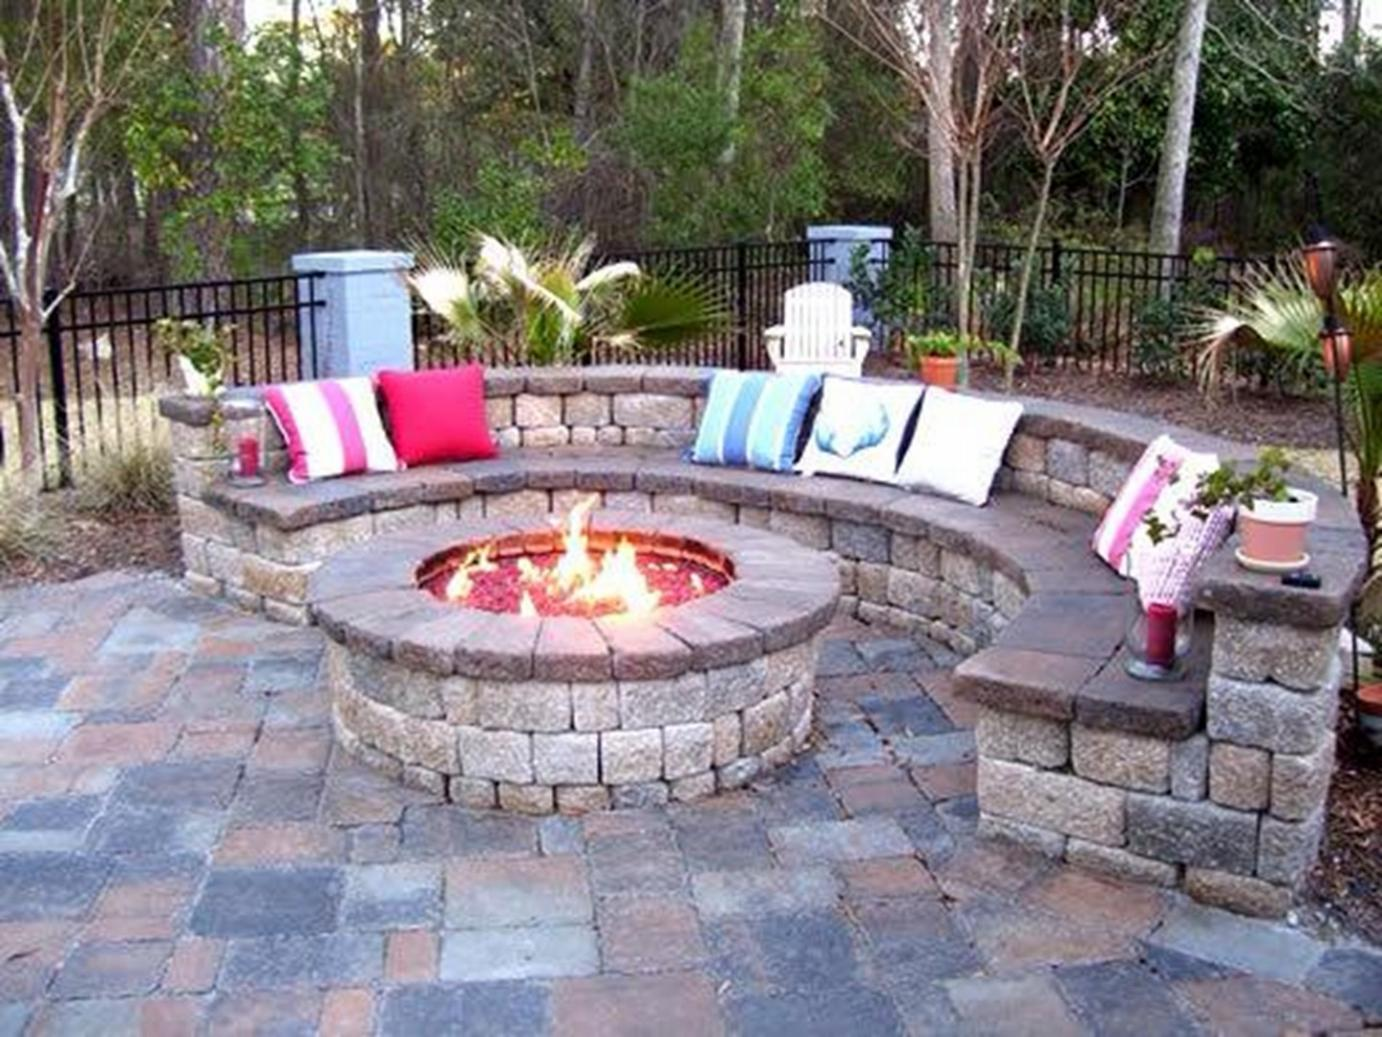 backyard fire pit ideas landscaping photo - 1